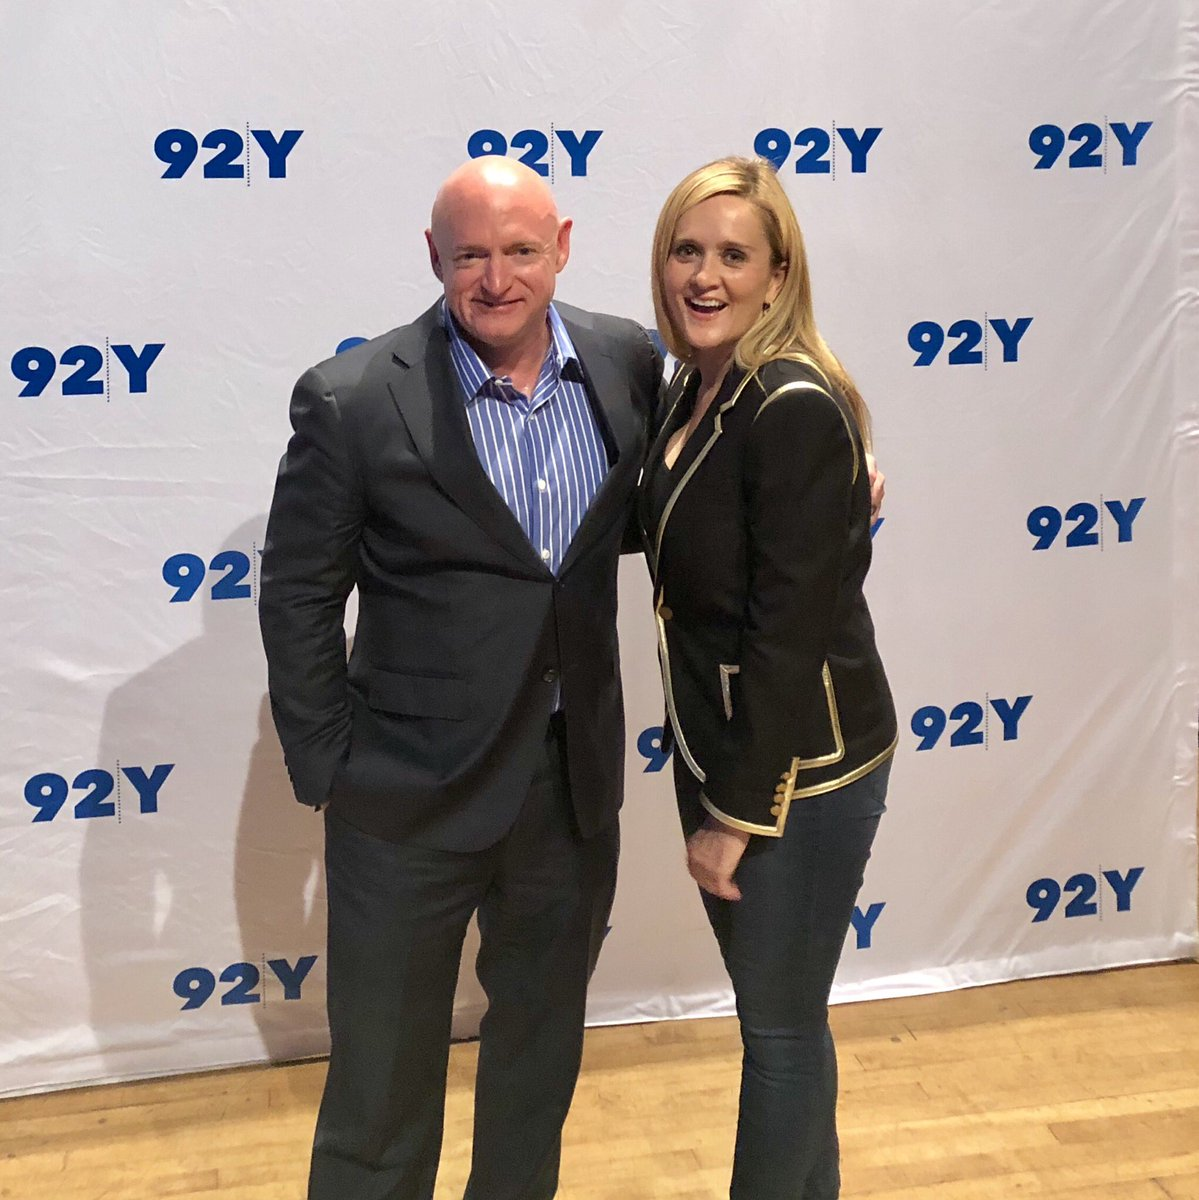 Samantha Bee is the best. We should all thank members of the media, like @iamsambee, who make this country a better place. Thanks @92Y for making the conversation happen.